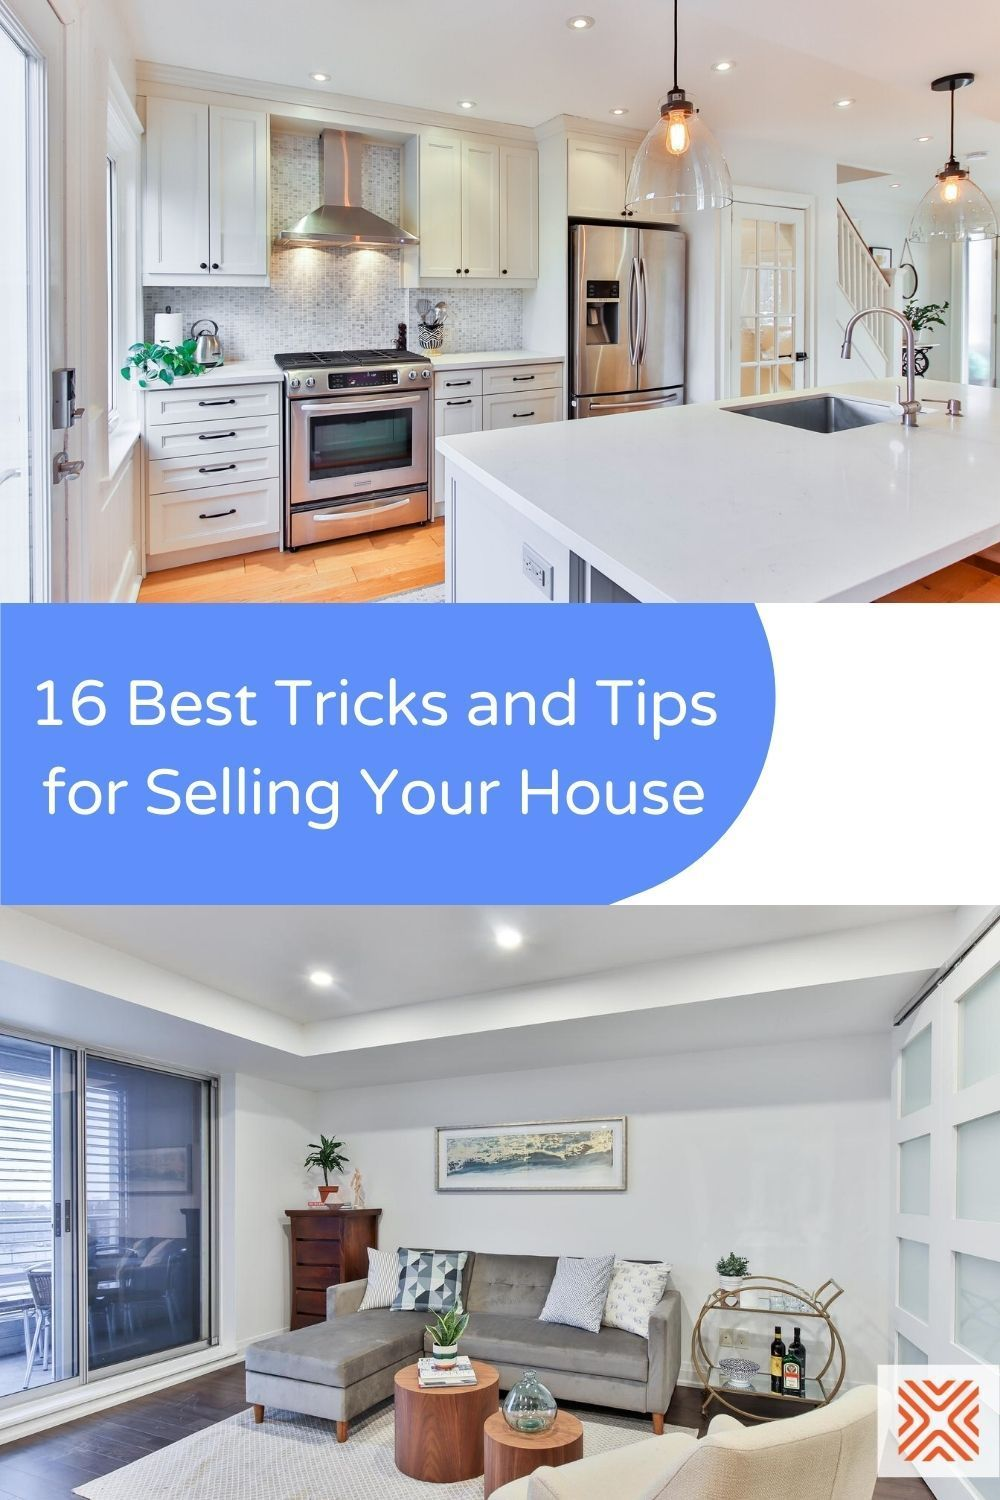 Planning to sell your house? Make sure it's in top shape before listing it! Follow our 16 real estate tips and home renovation ideas, and get your house ready for sale.